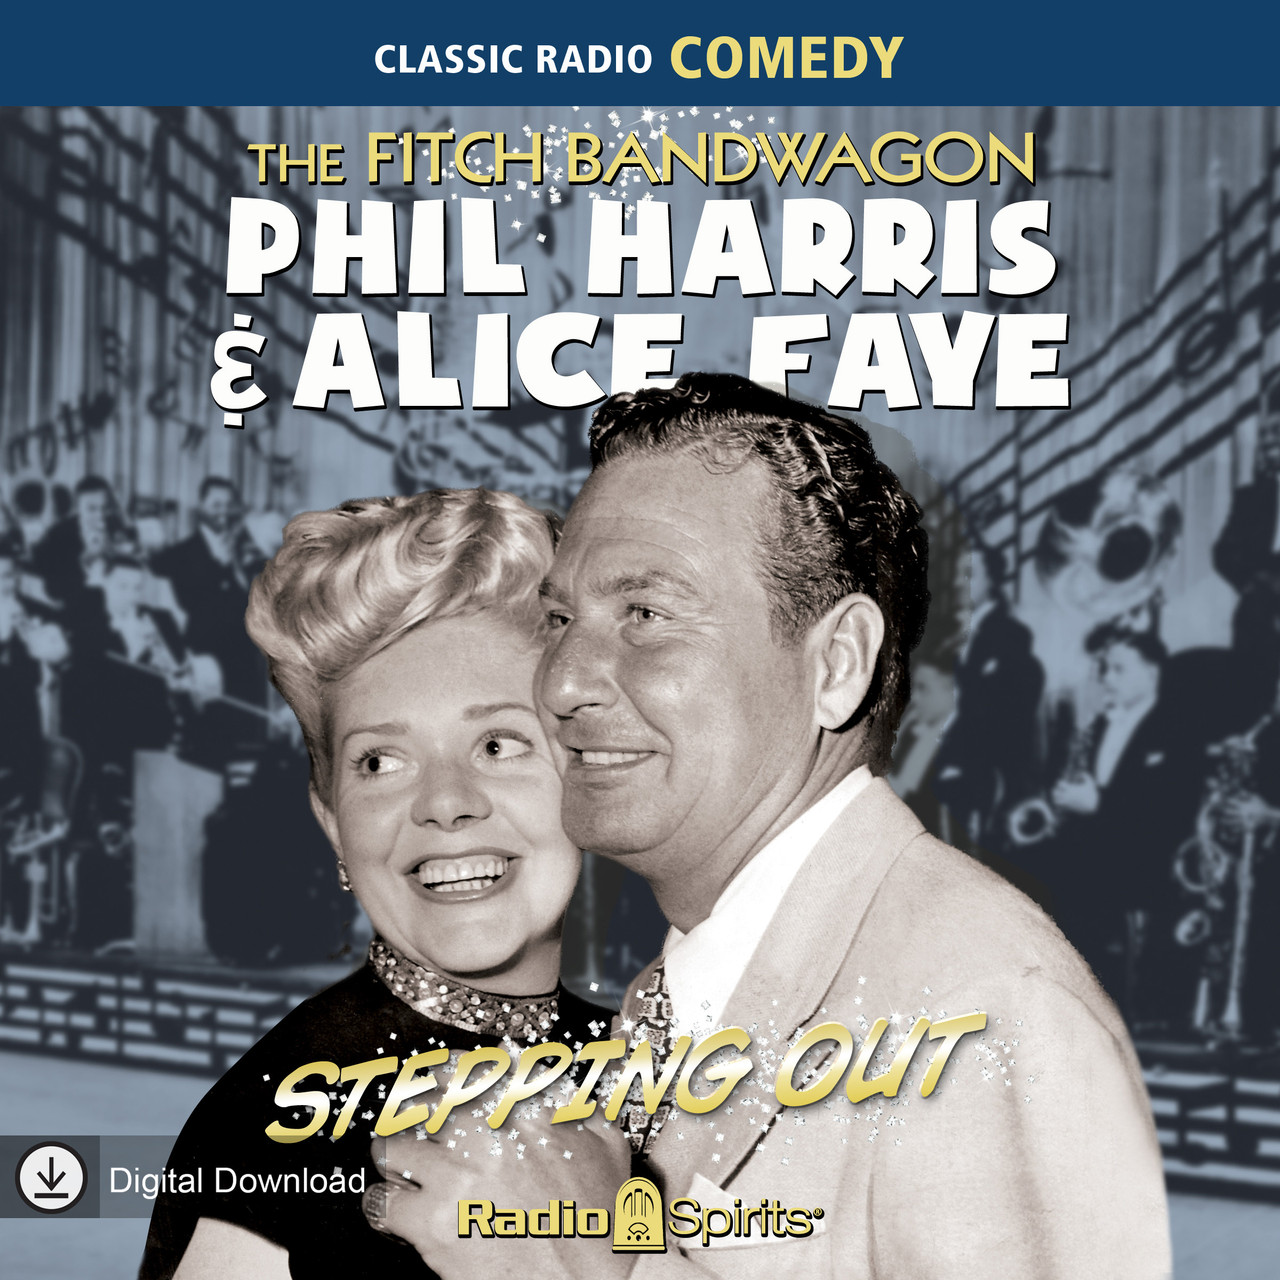 Fitch Bandwagon Phil Harris-Alice Faye: Stepping Out (MP3 Download)